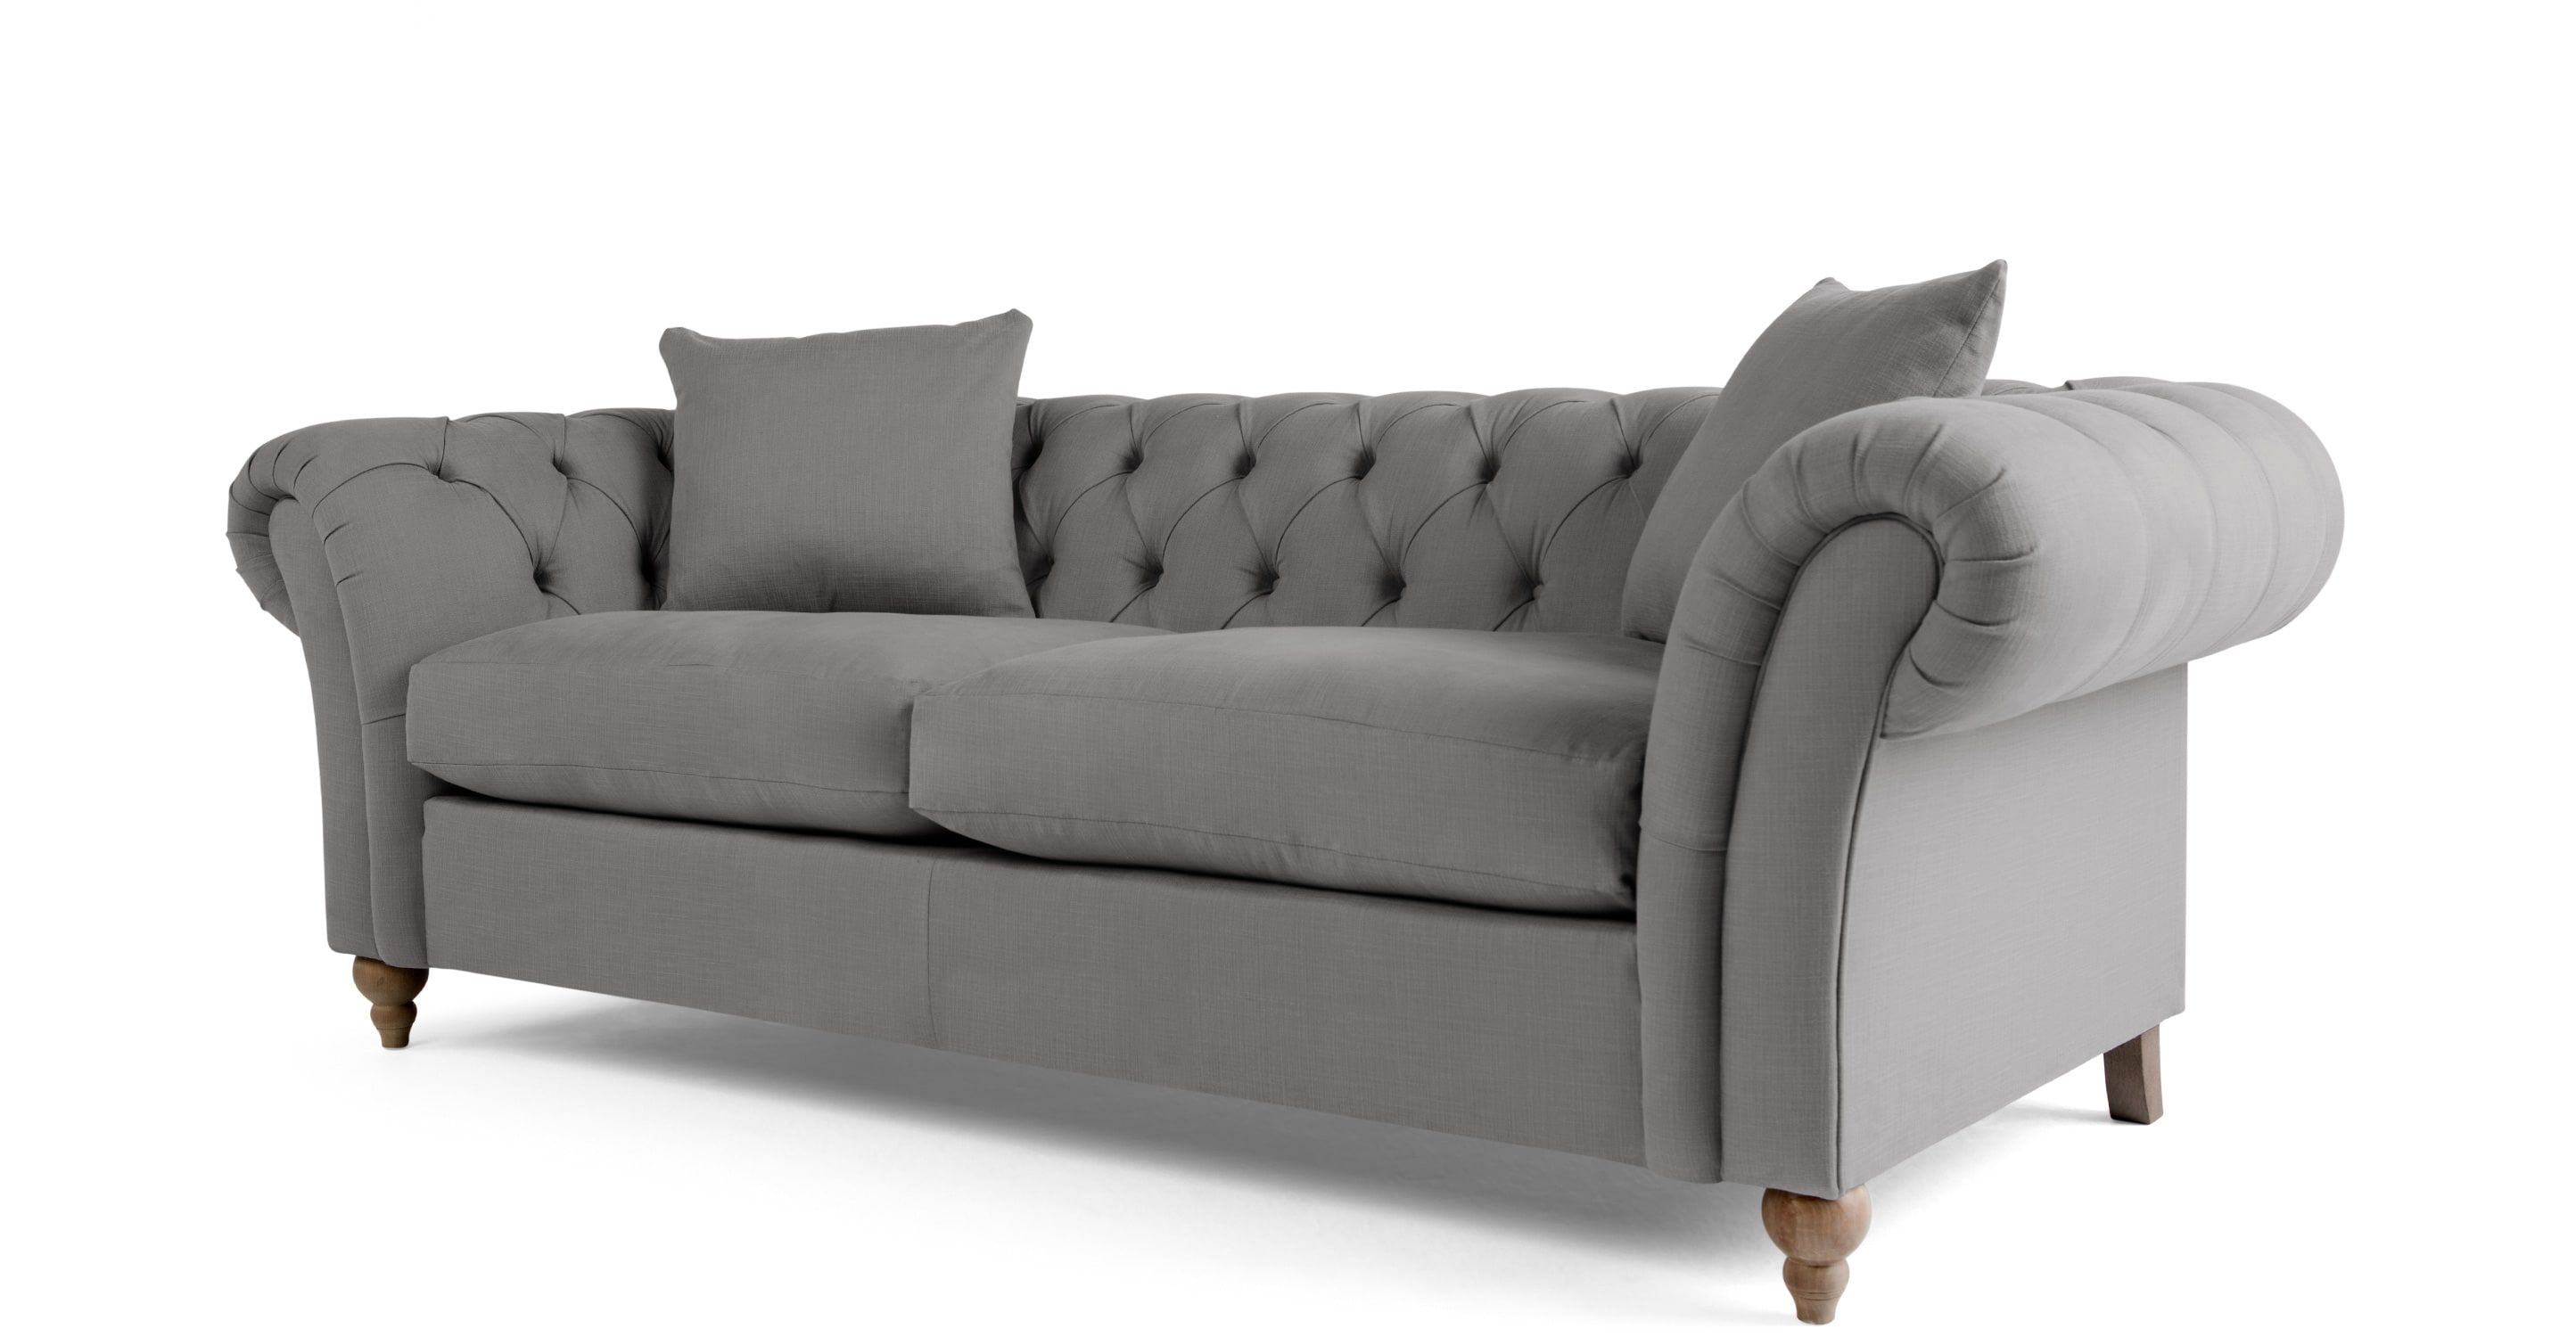 Bardot 3 Sitzer Chesterfield Sofa Platingrau Sofa Inspiration Chesterfield Sofa Teal Living Rooms